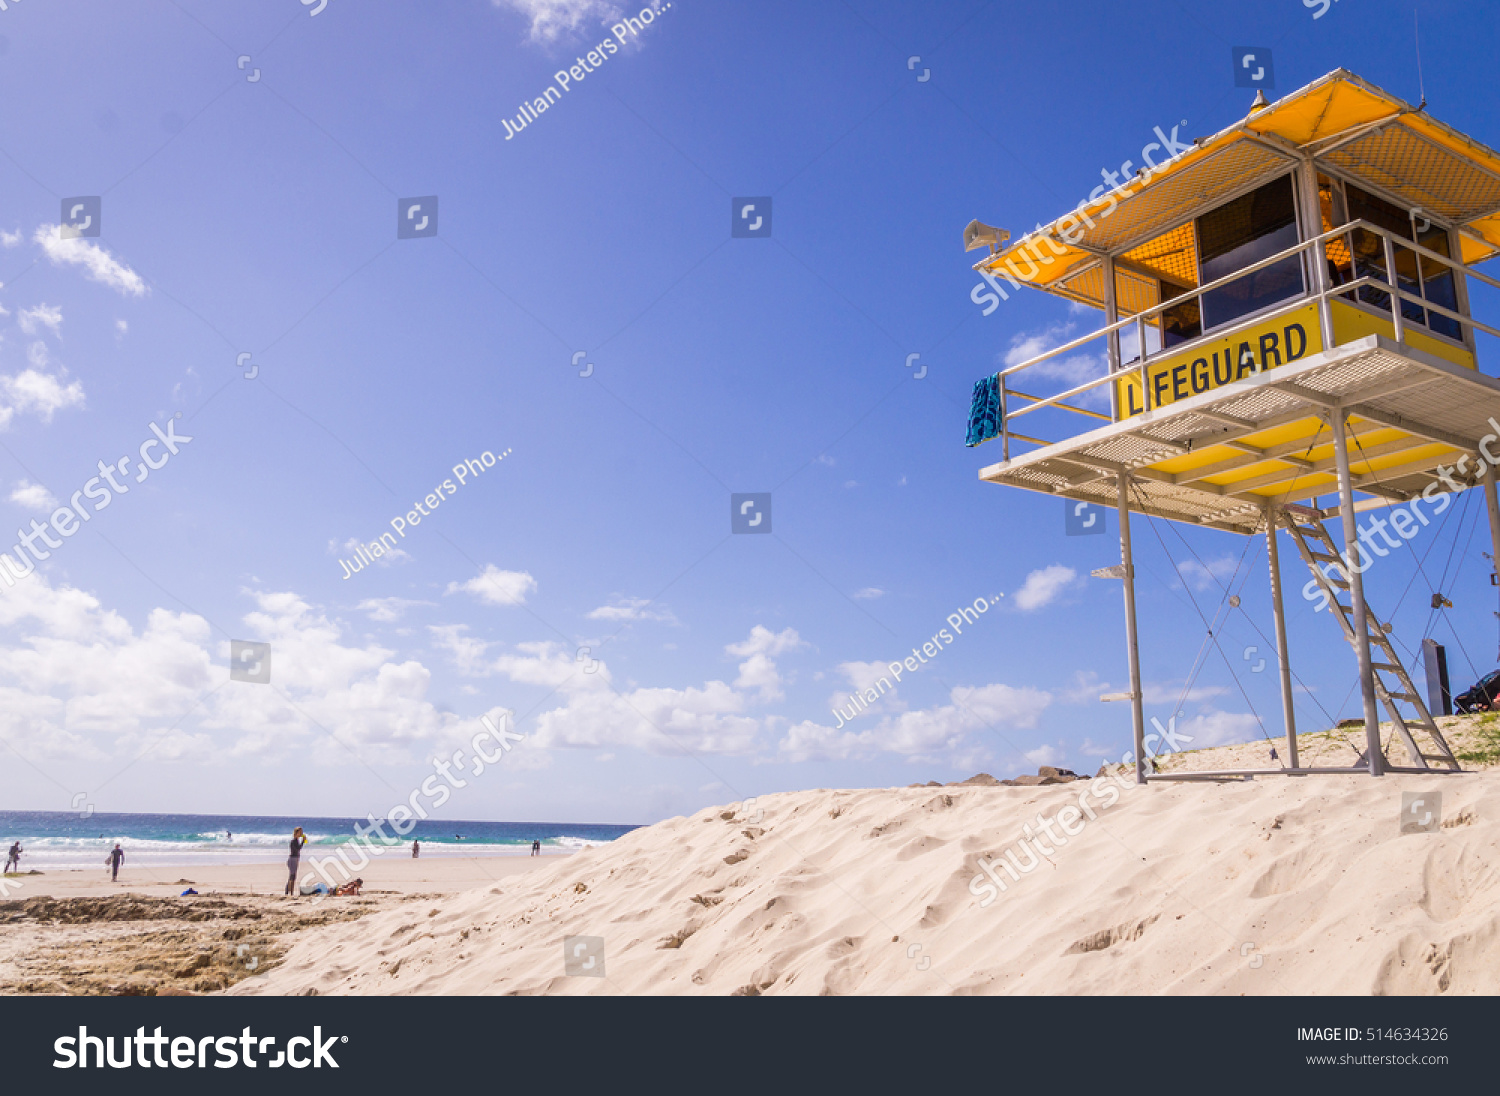 3c61563b55e Yellow lifeguard tower watching over beach with blue sky at Snapper Rocks